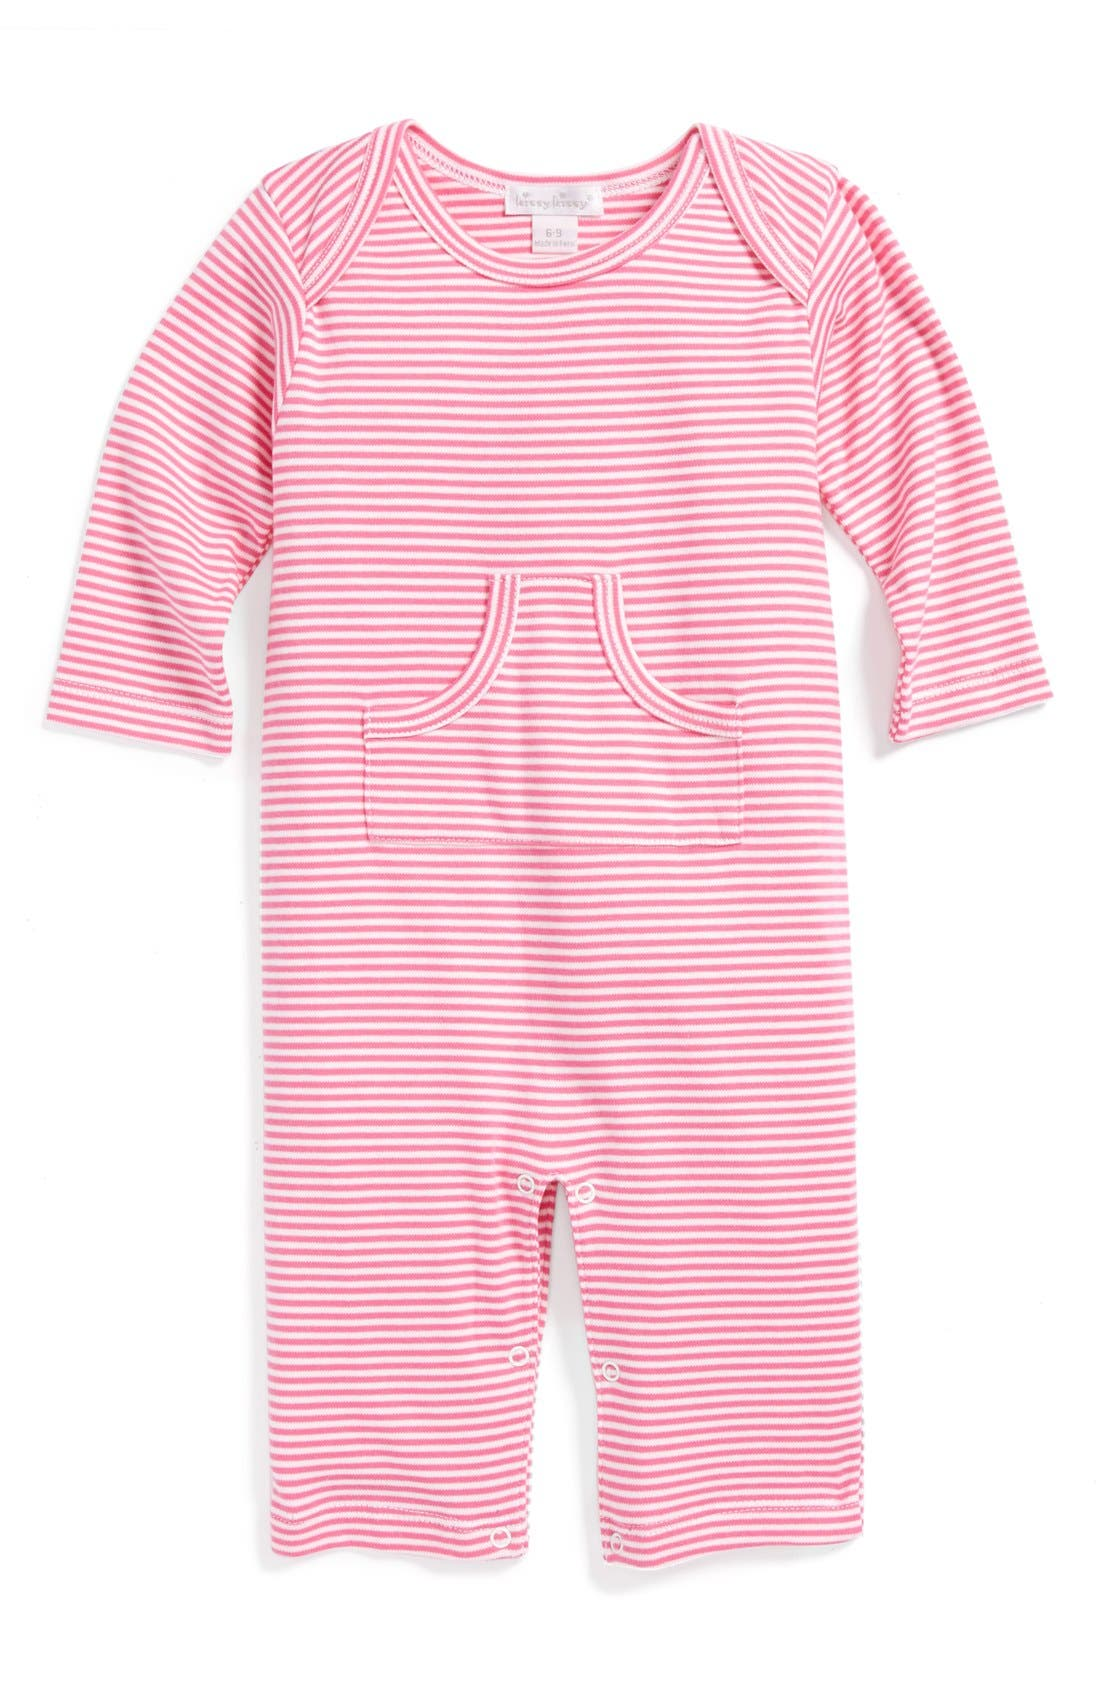 Main Image - Kissy Kissy Kangaroo Pocket Coveralls (Baby Girls)